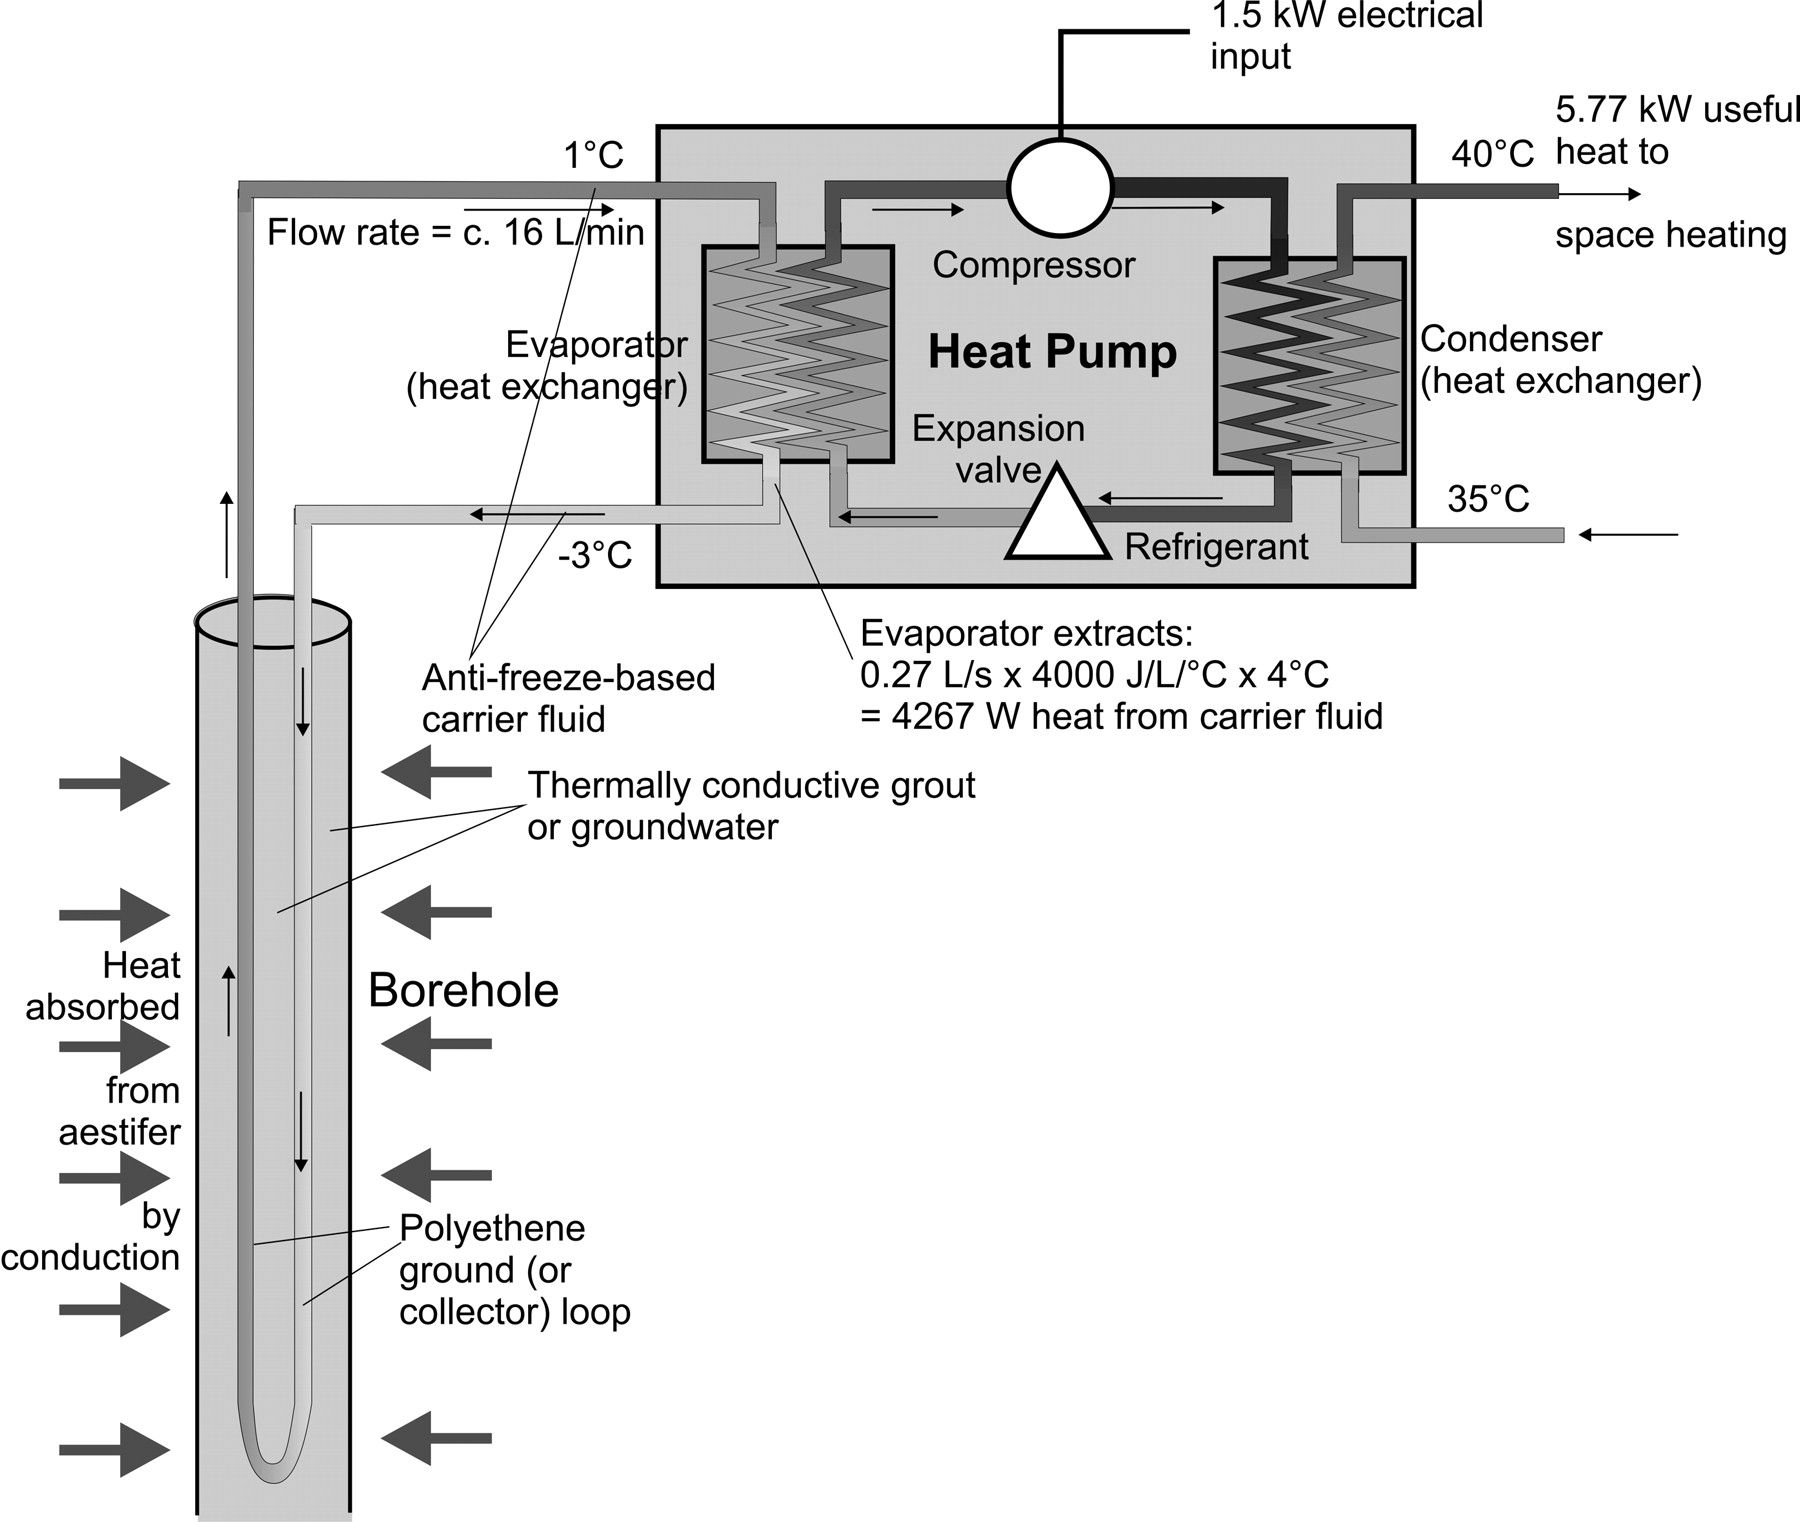 Pin By M J On Geothermal Amp Heat Pumps